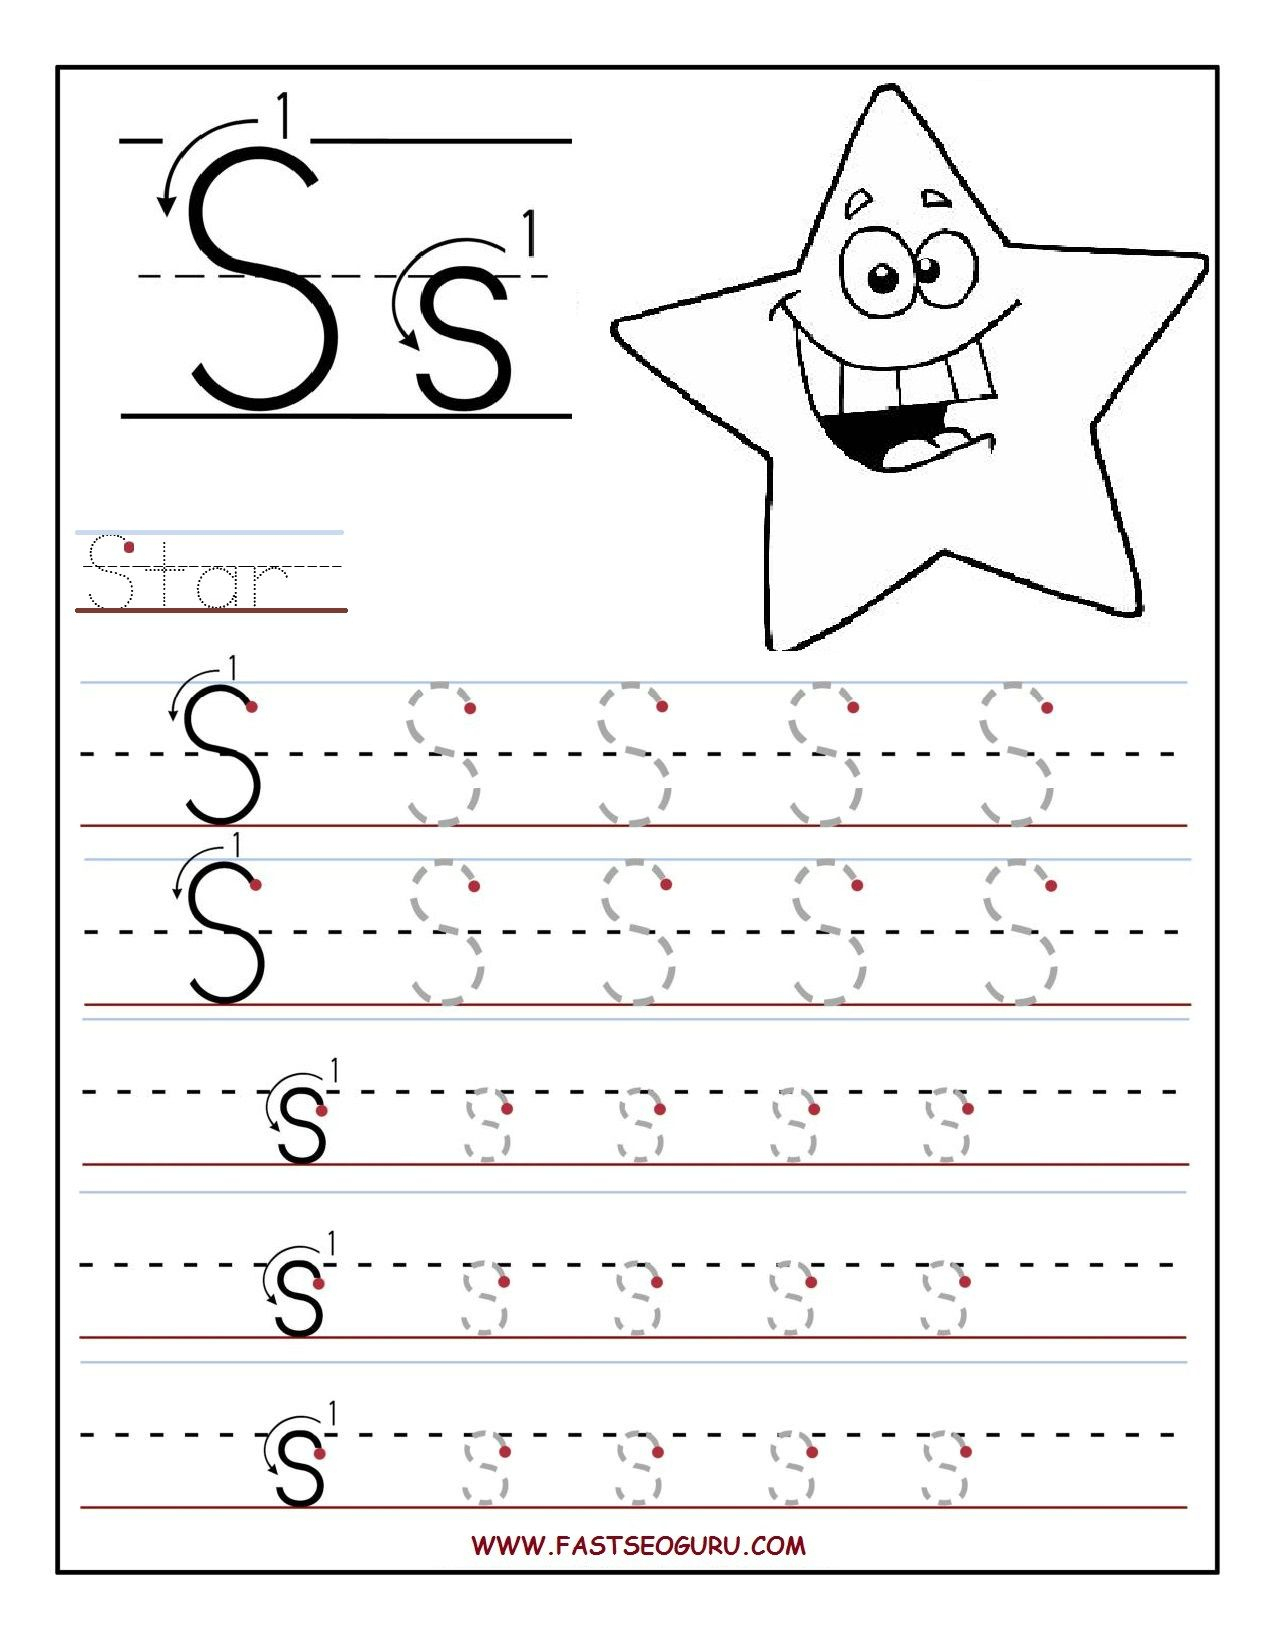 Printable Letter S Tracing Worksheets For Preschool | For The - Free Printable Preschool Worksheets Tracing Letters